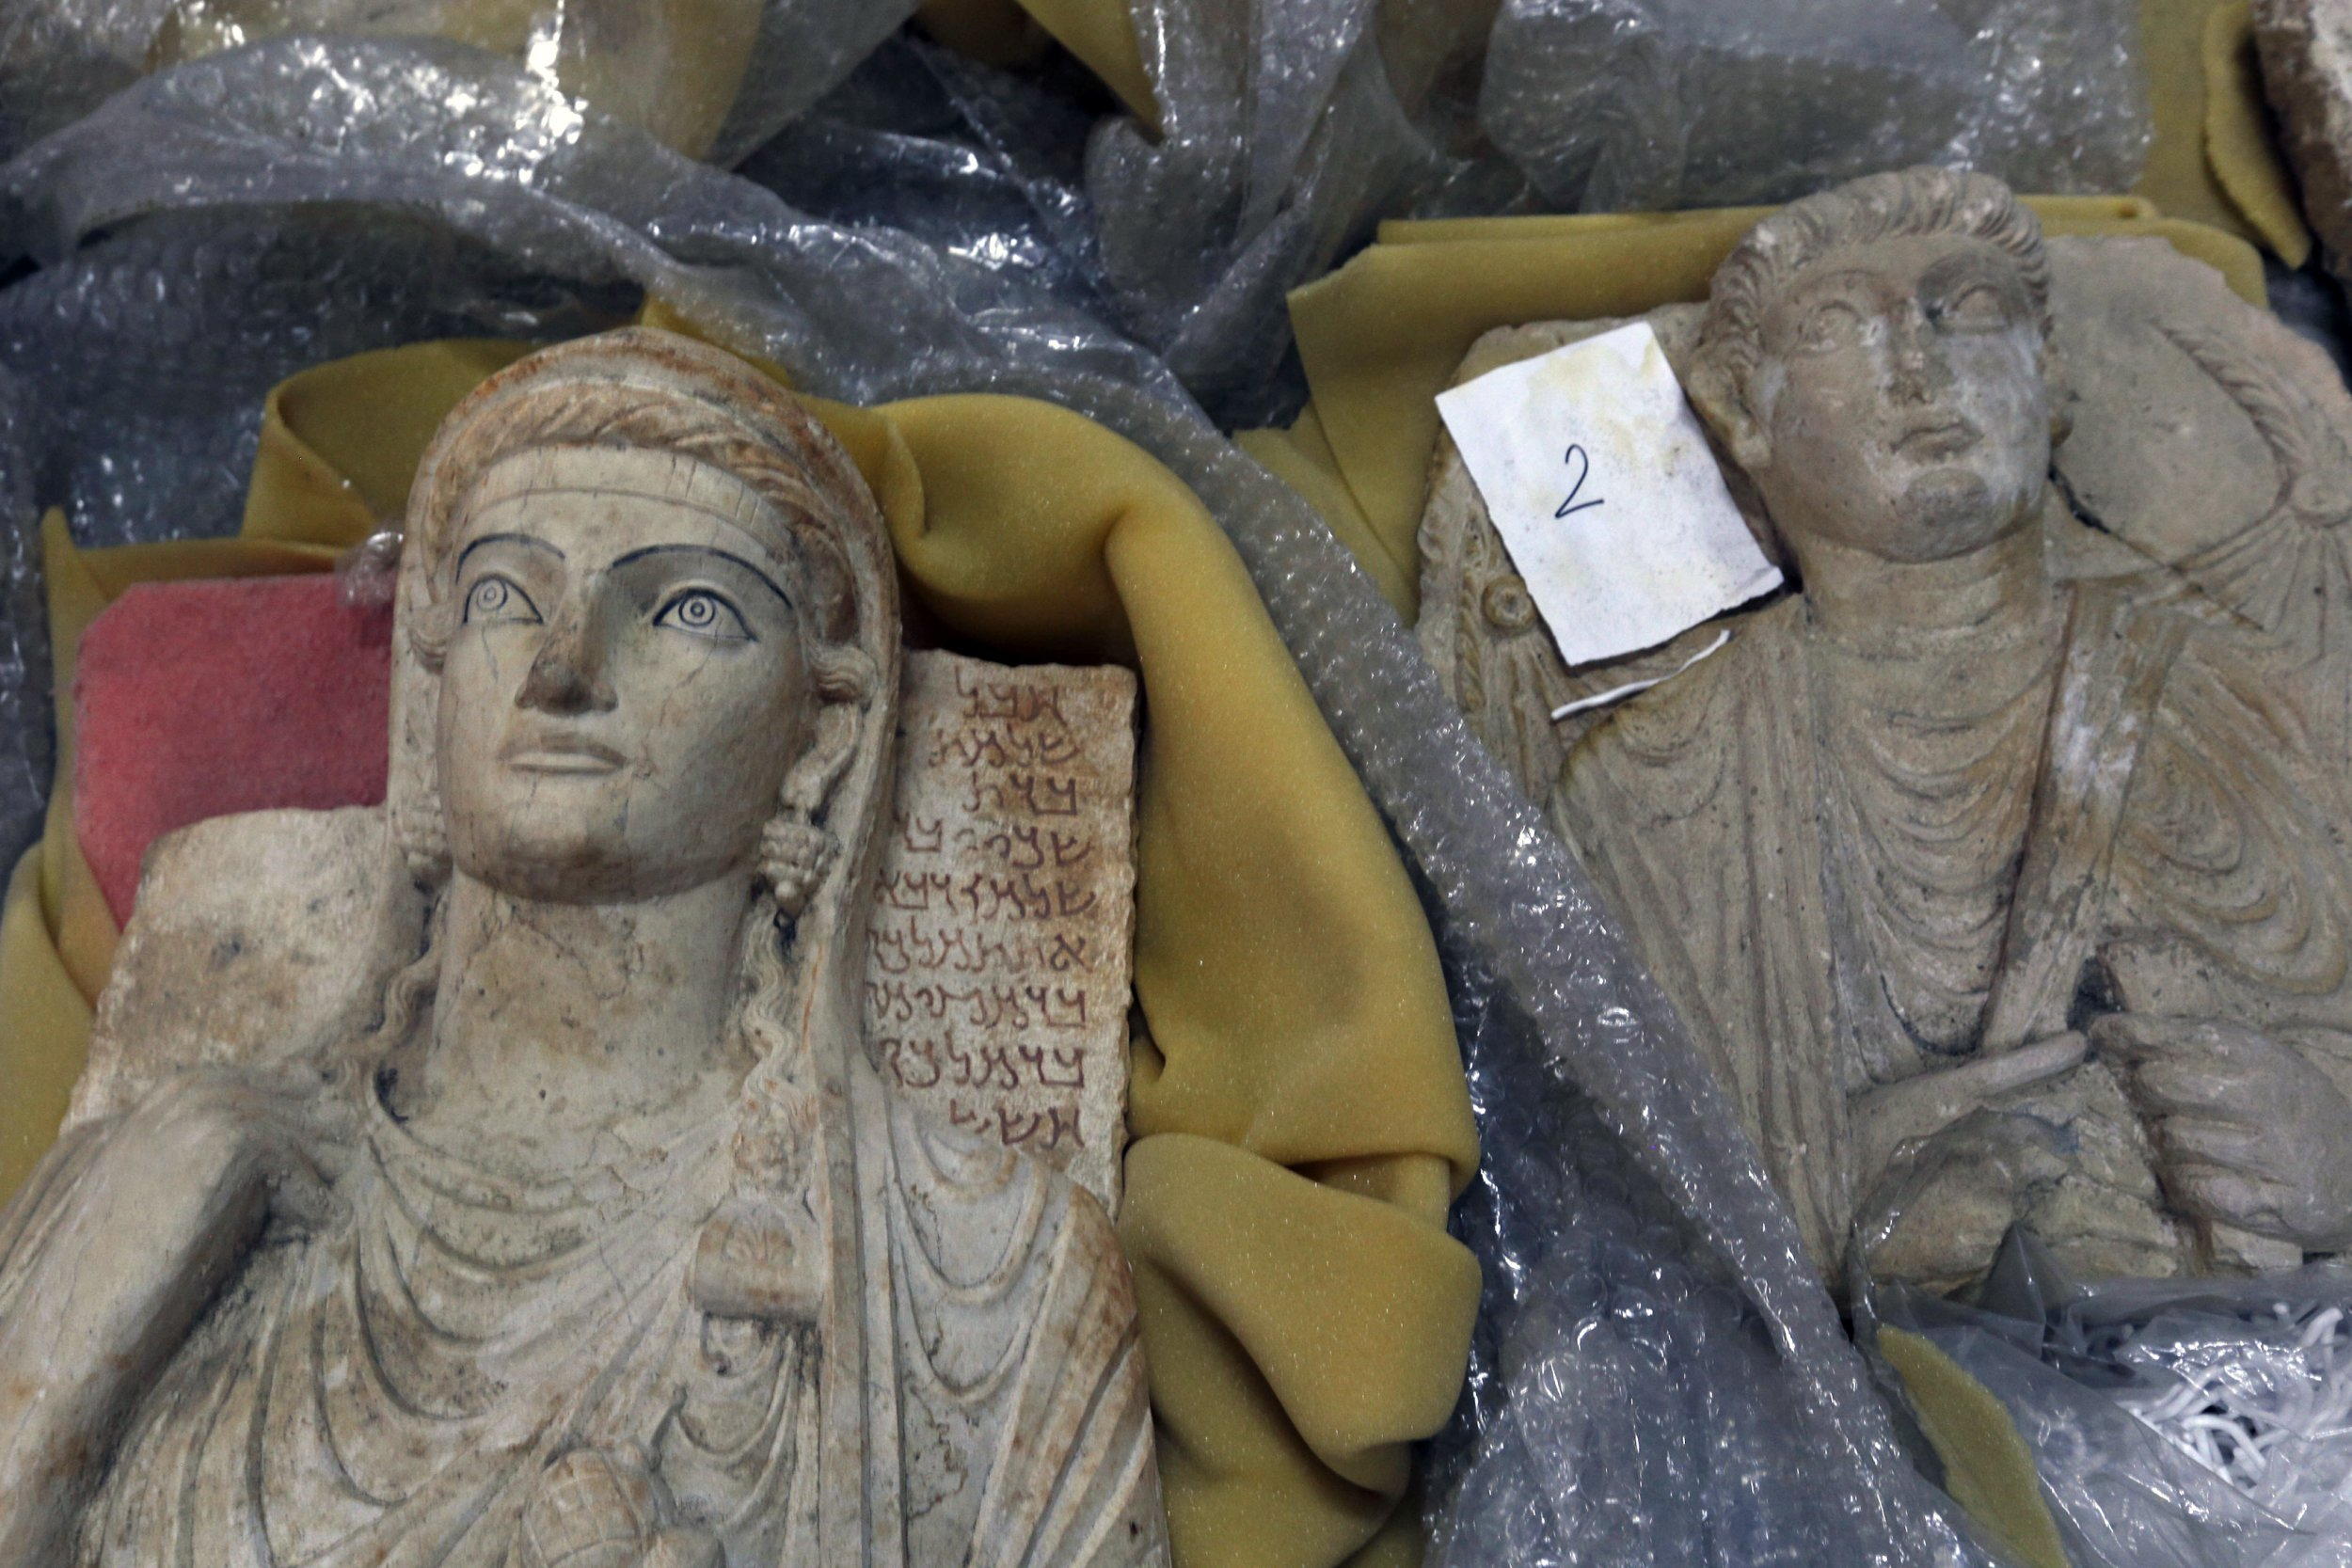 02_27_syria_antiquities_01